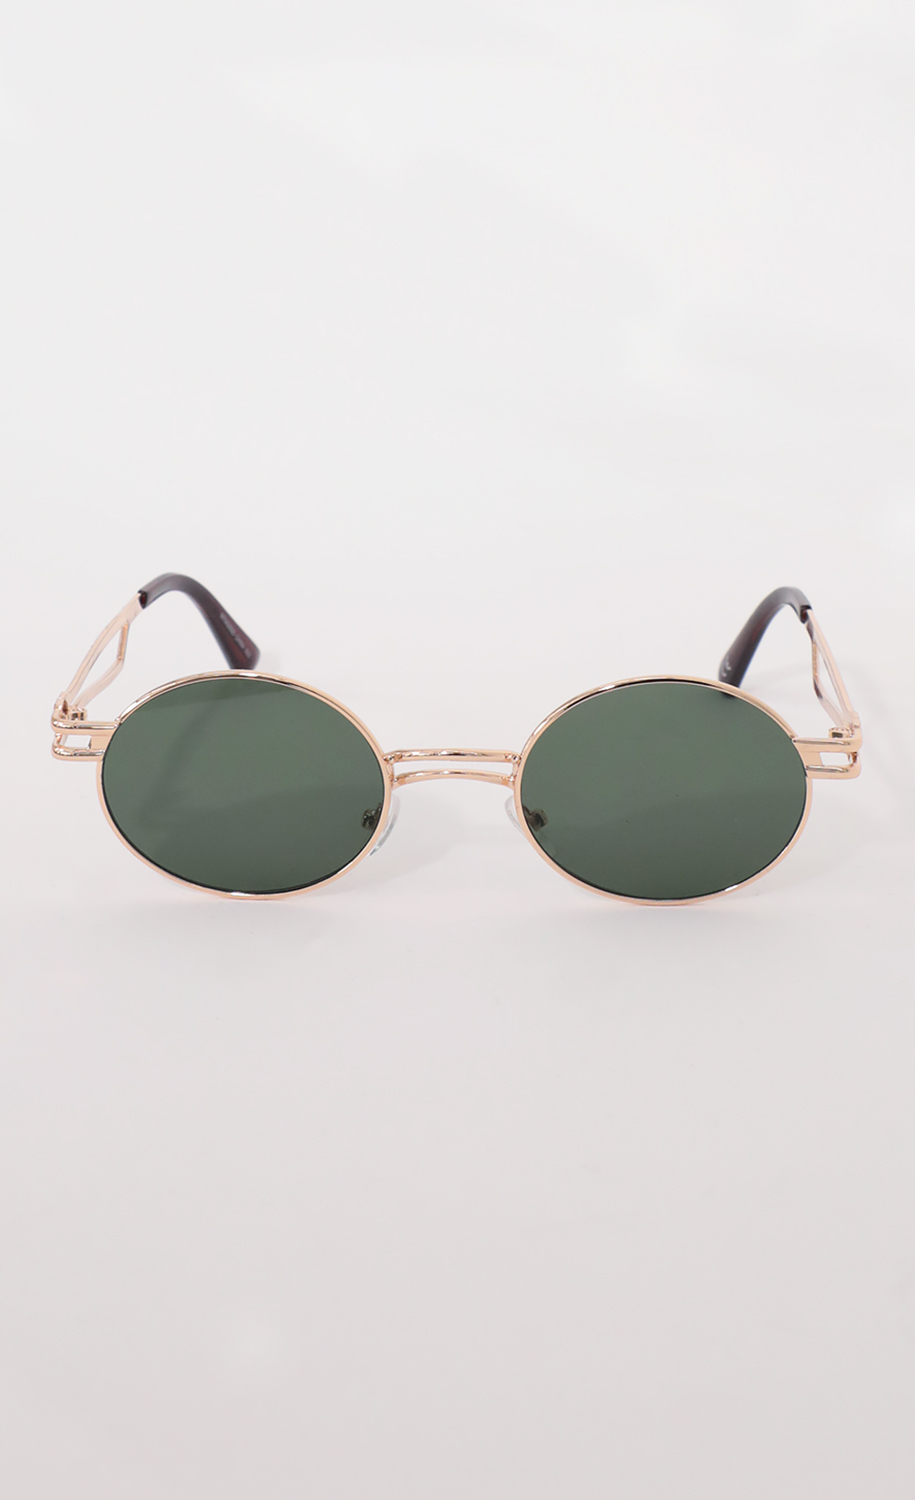 Metal Double Temple Accent Oval Round Gold Sunglasses in Green